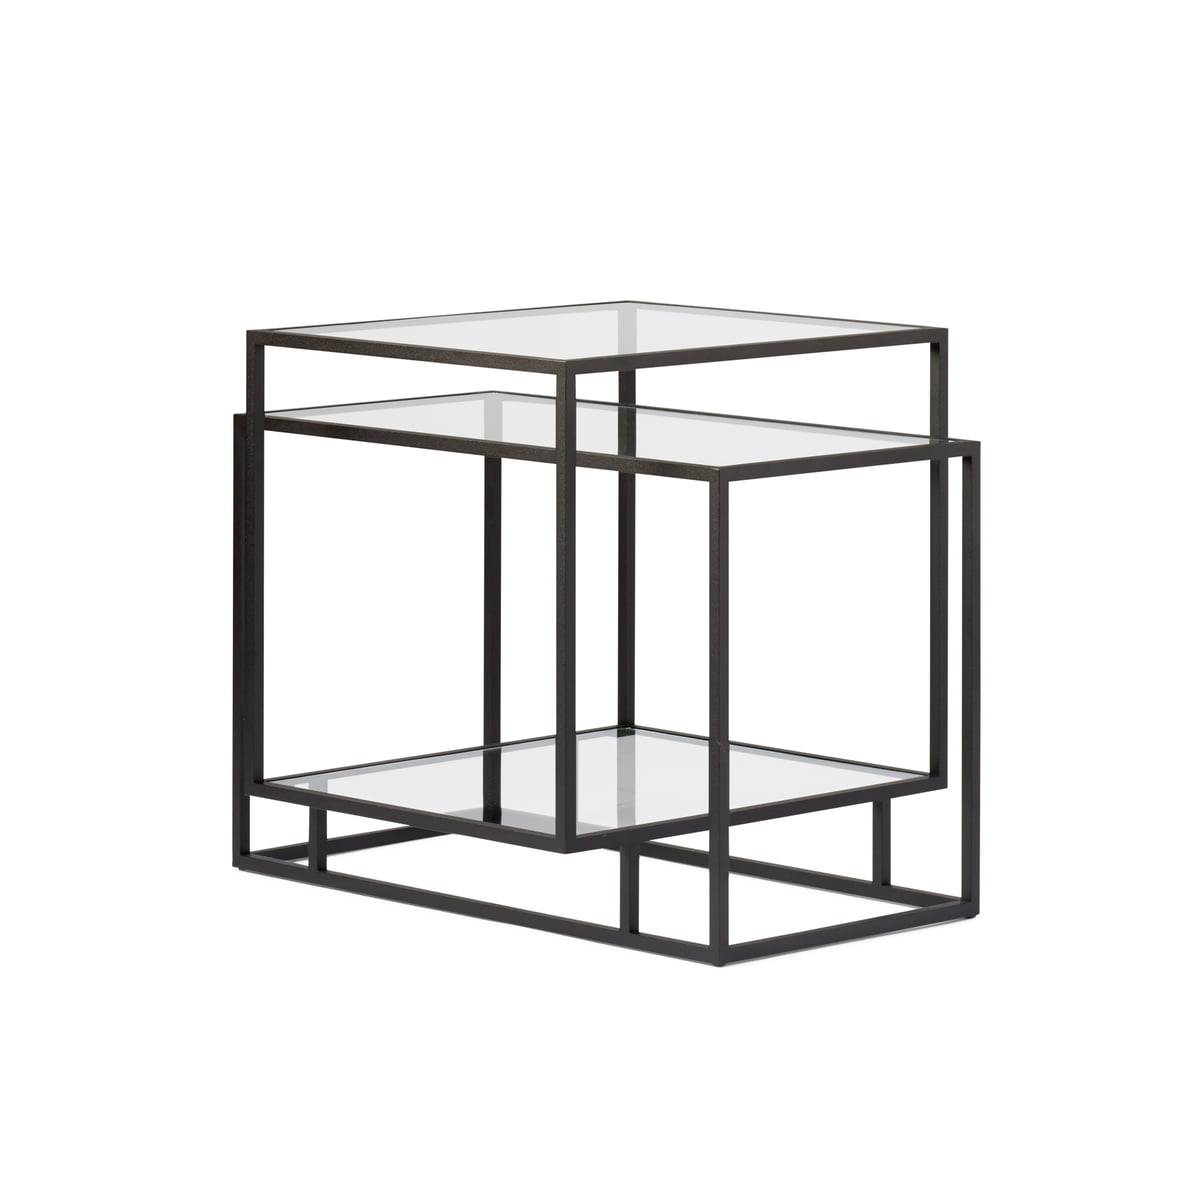 Tangled Side Table Spectrum | Connox Shop